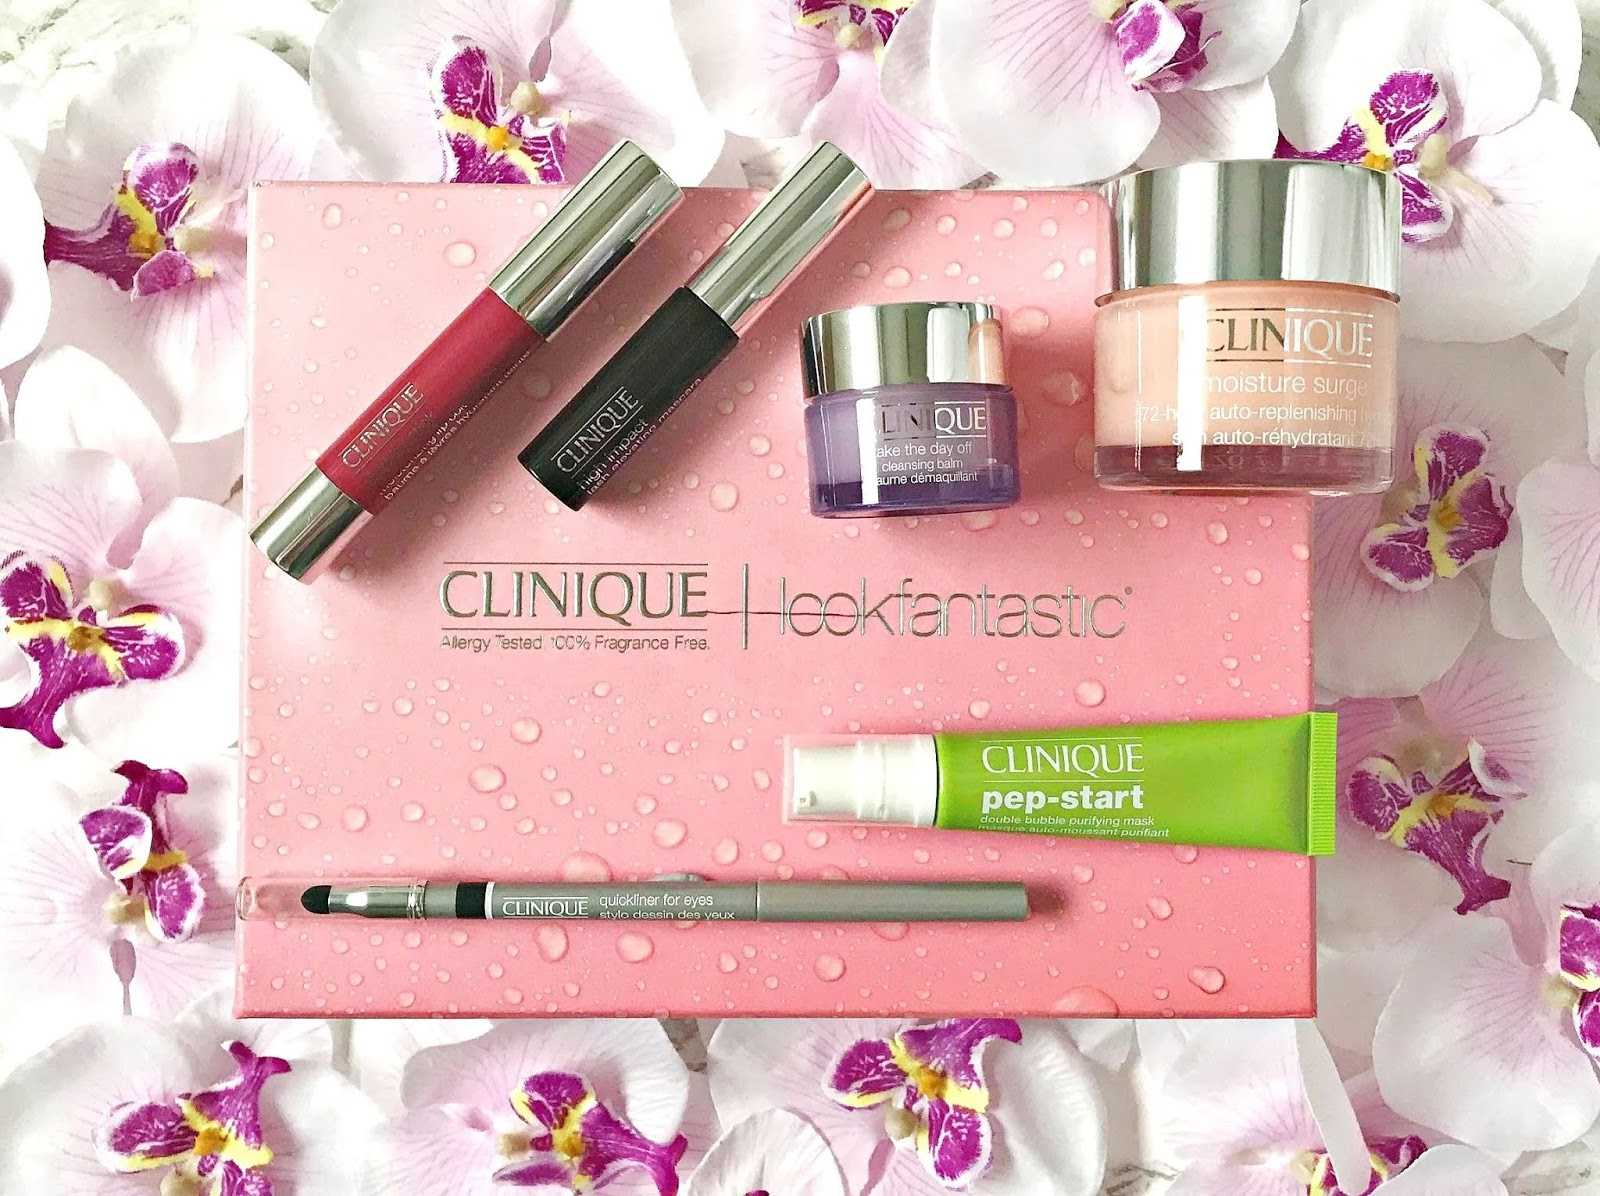 #lfxclinique, Lookfantastic x Clinique Limited Edition Beauty Box